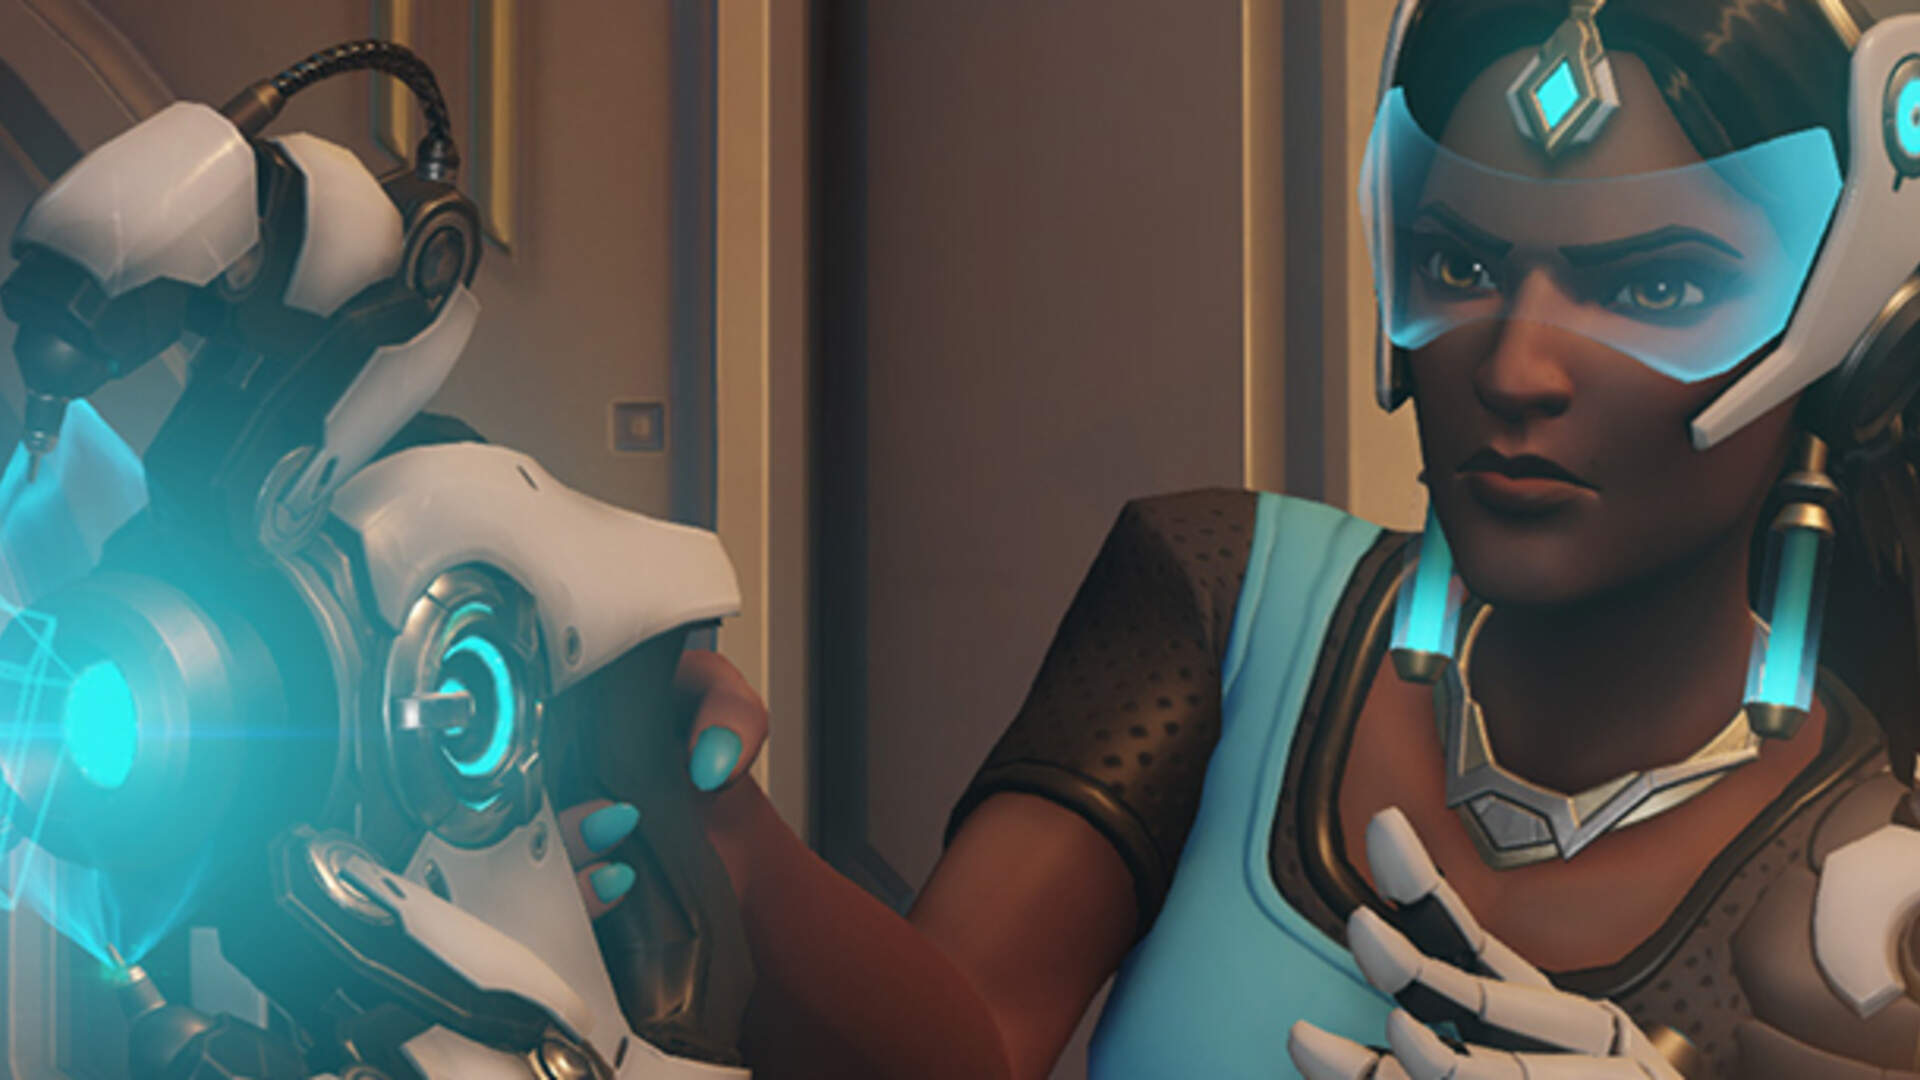 The Evolution of Symmetra, Overwatch's Most Changed and Divisive Character